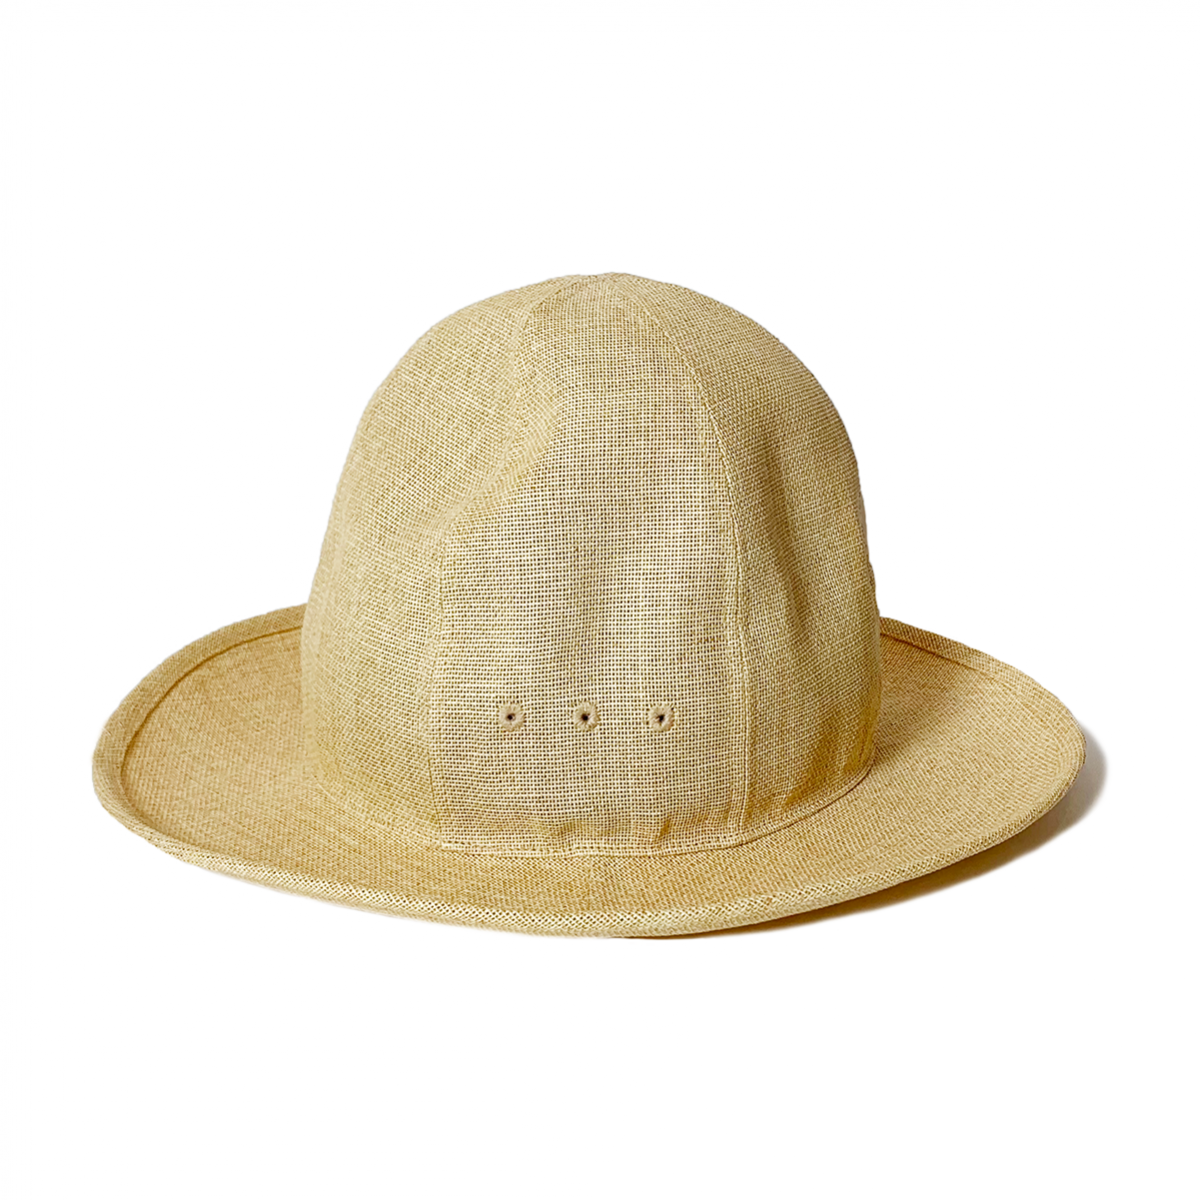 HICOSAKA(ヒコサカ) PAPER CLOTH MOUTAIN HAT